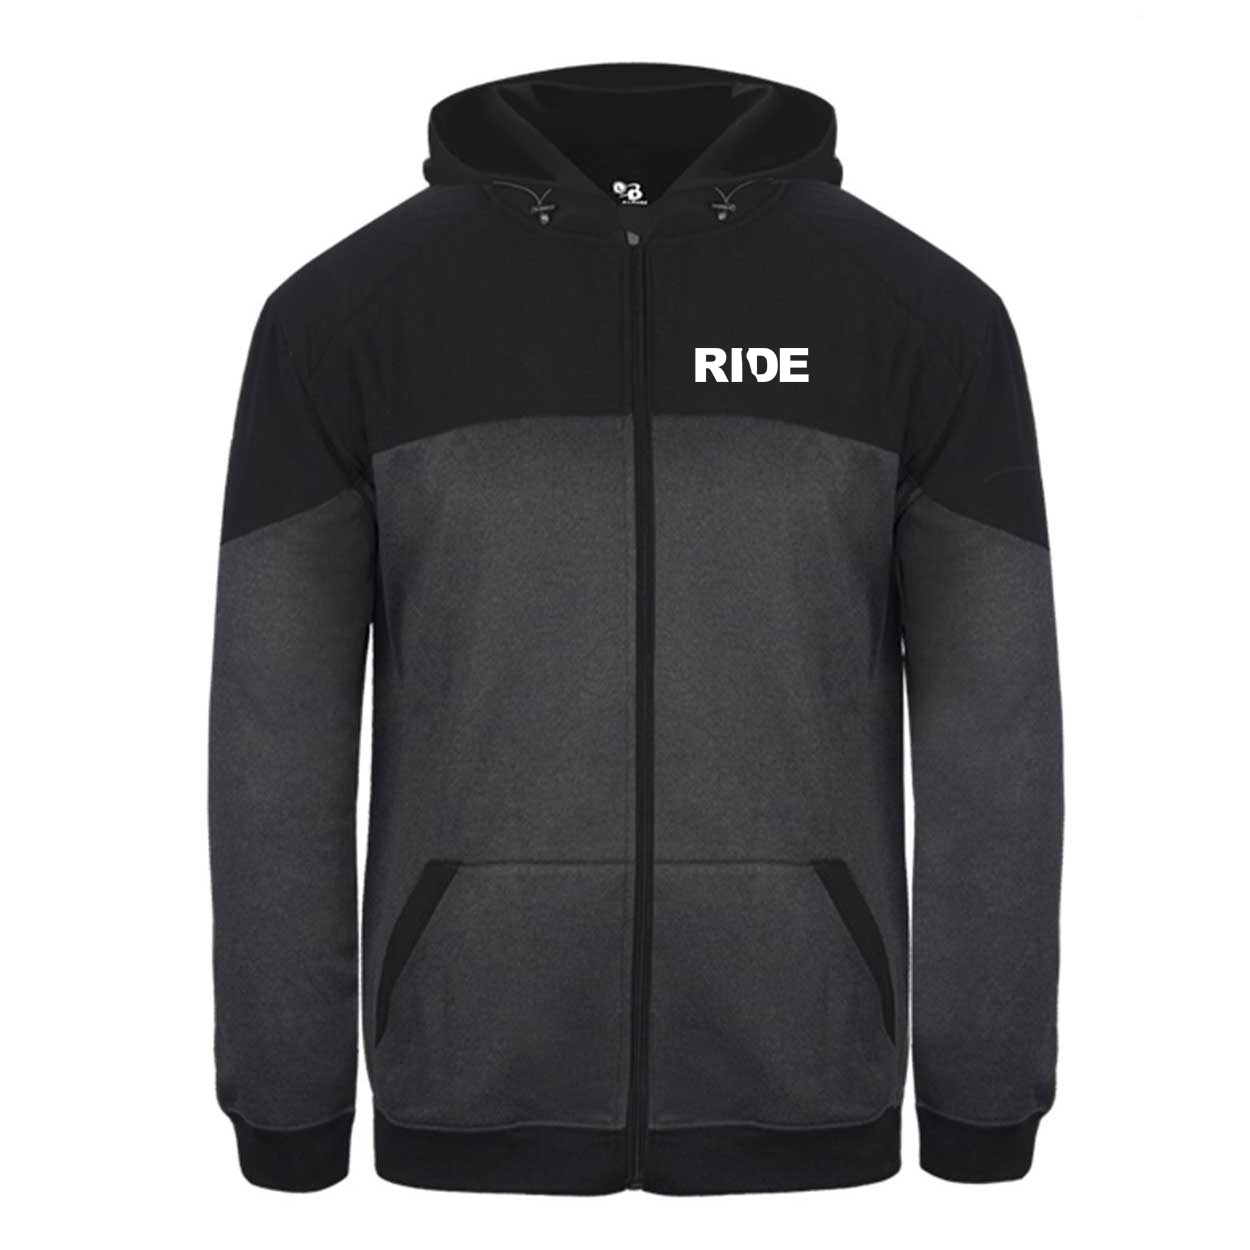 Ride Delaware Classic Vindicator Jacket Carbon Heather/Black (White Logo)